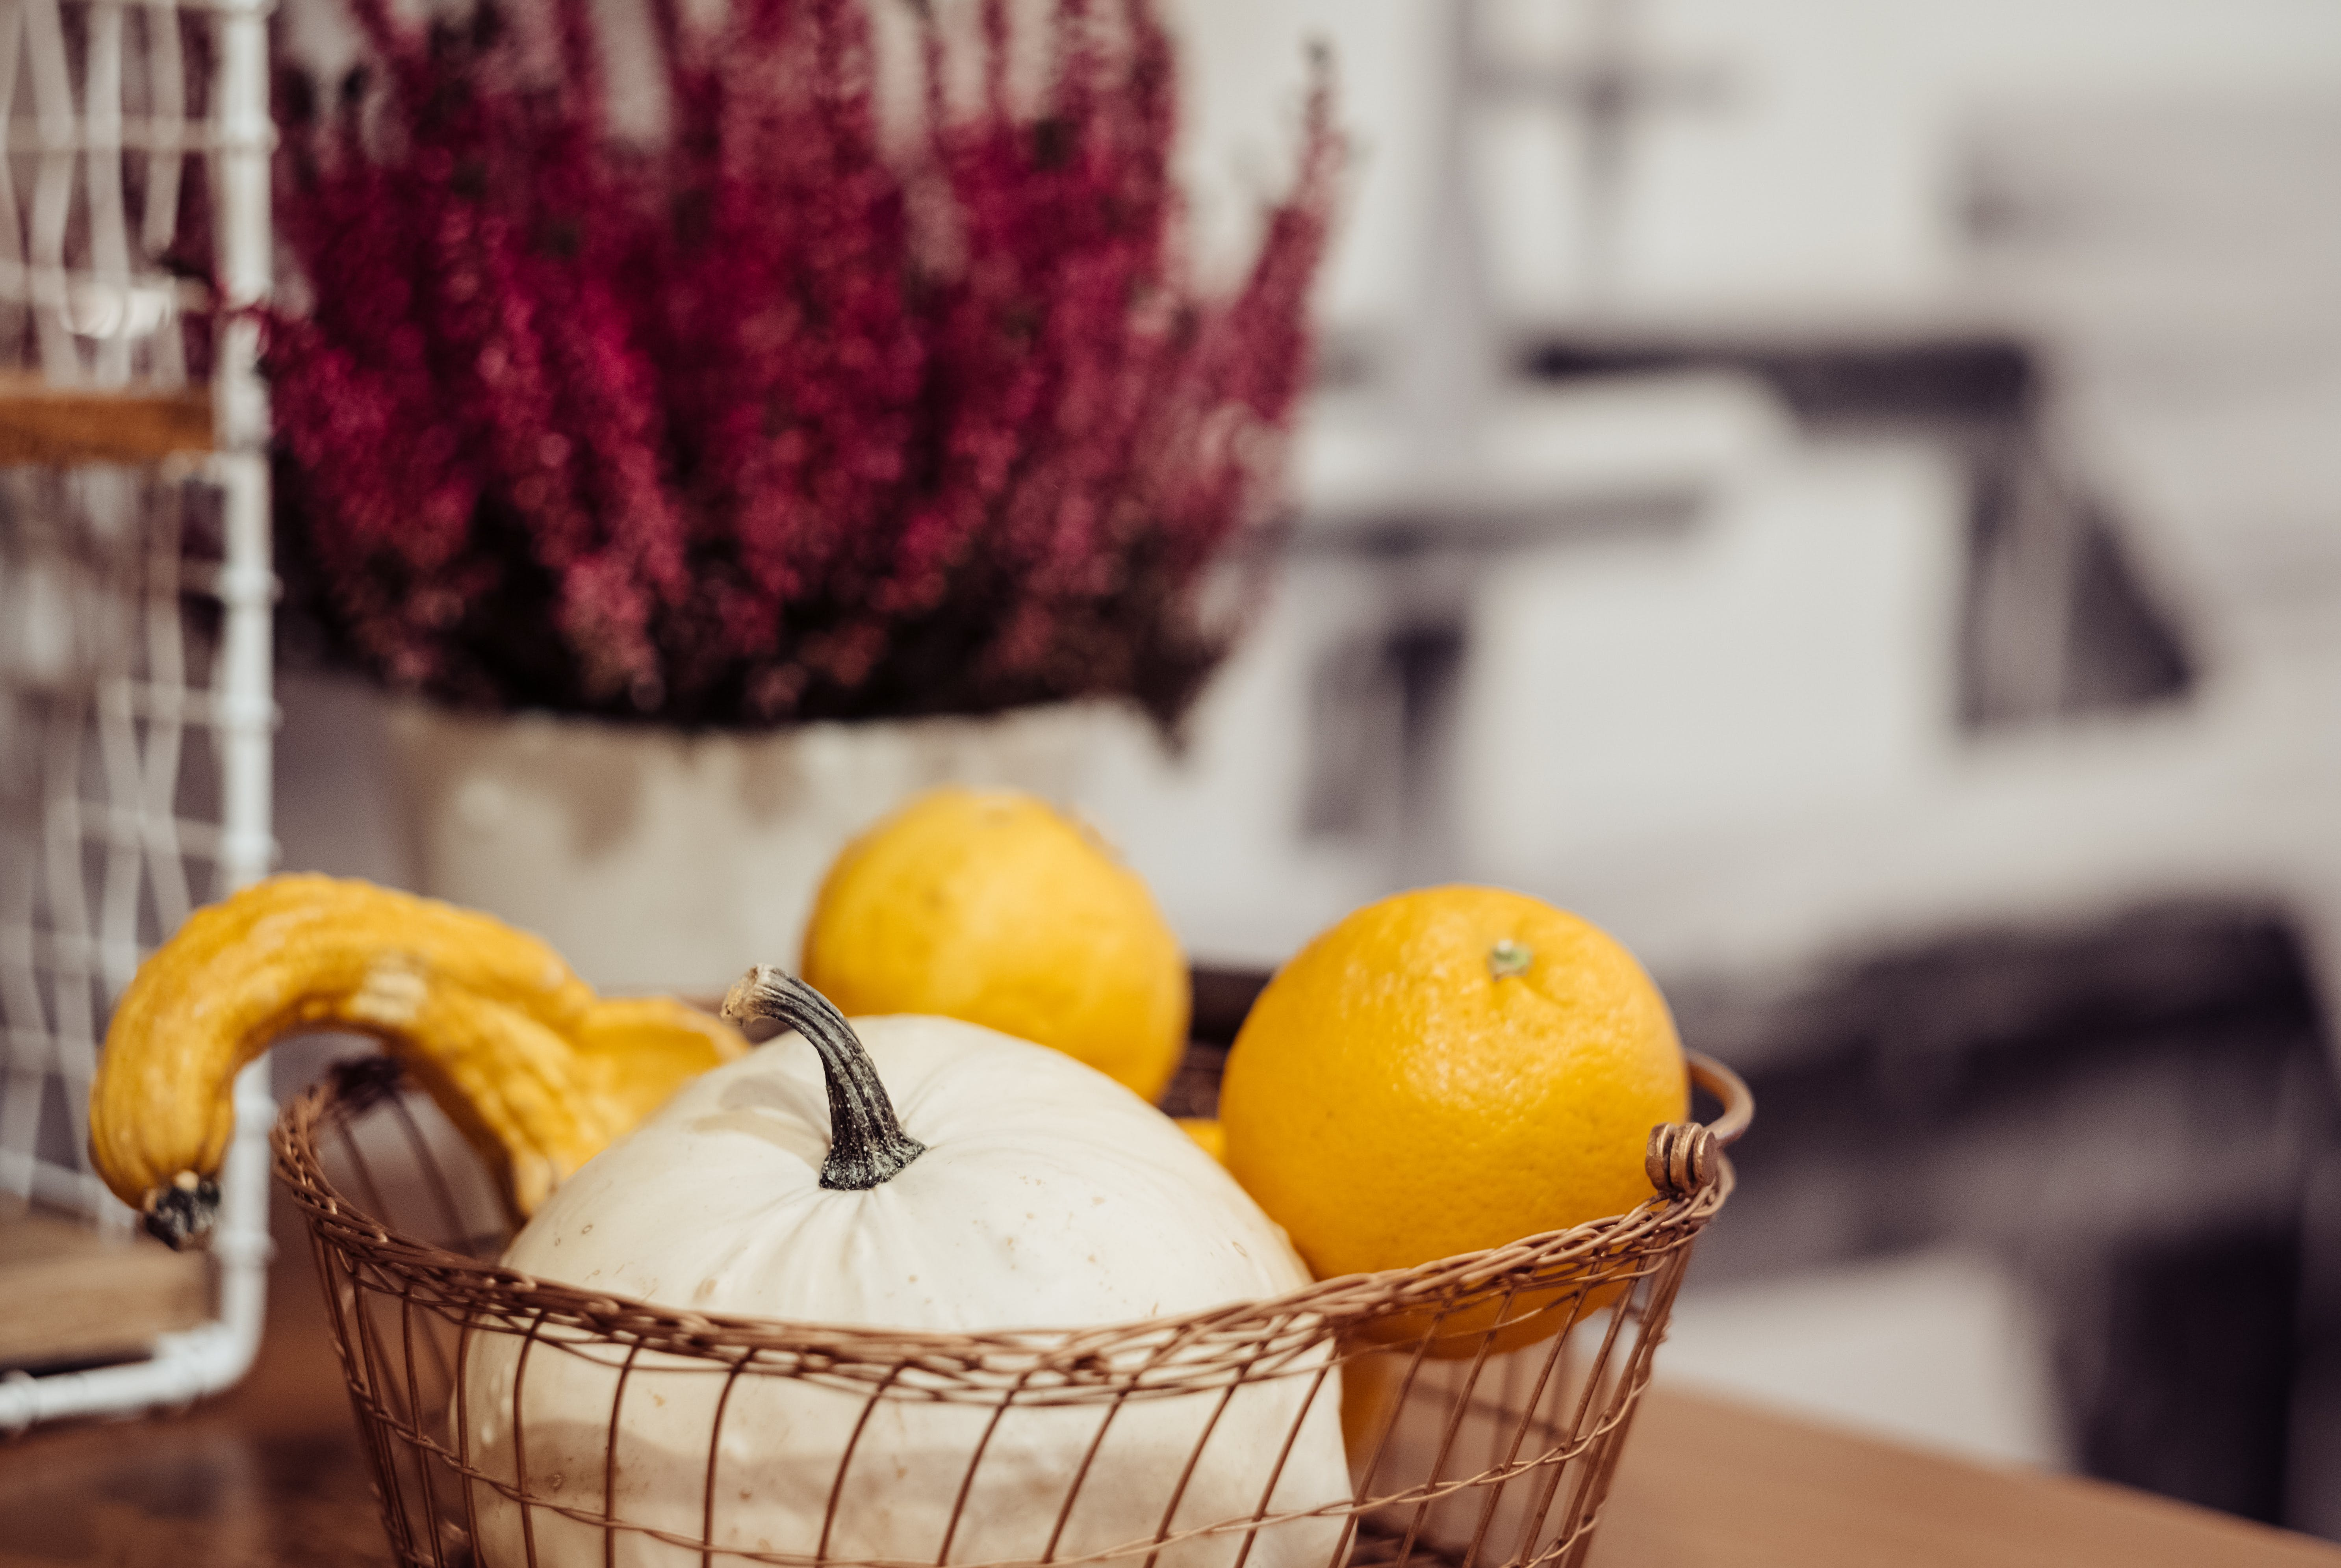 Selective Focus Photography of Orange Citrus Fruits and White Pumpkin in Basket